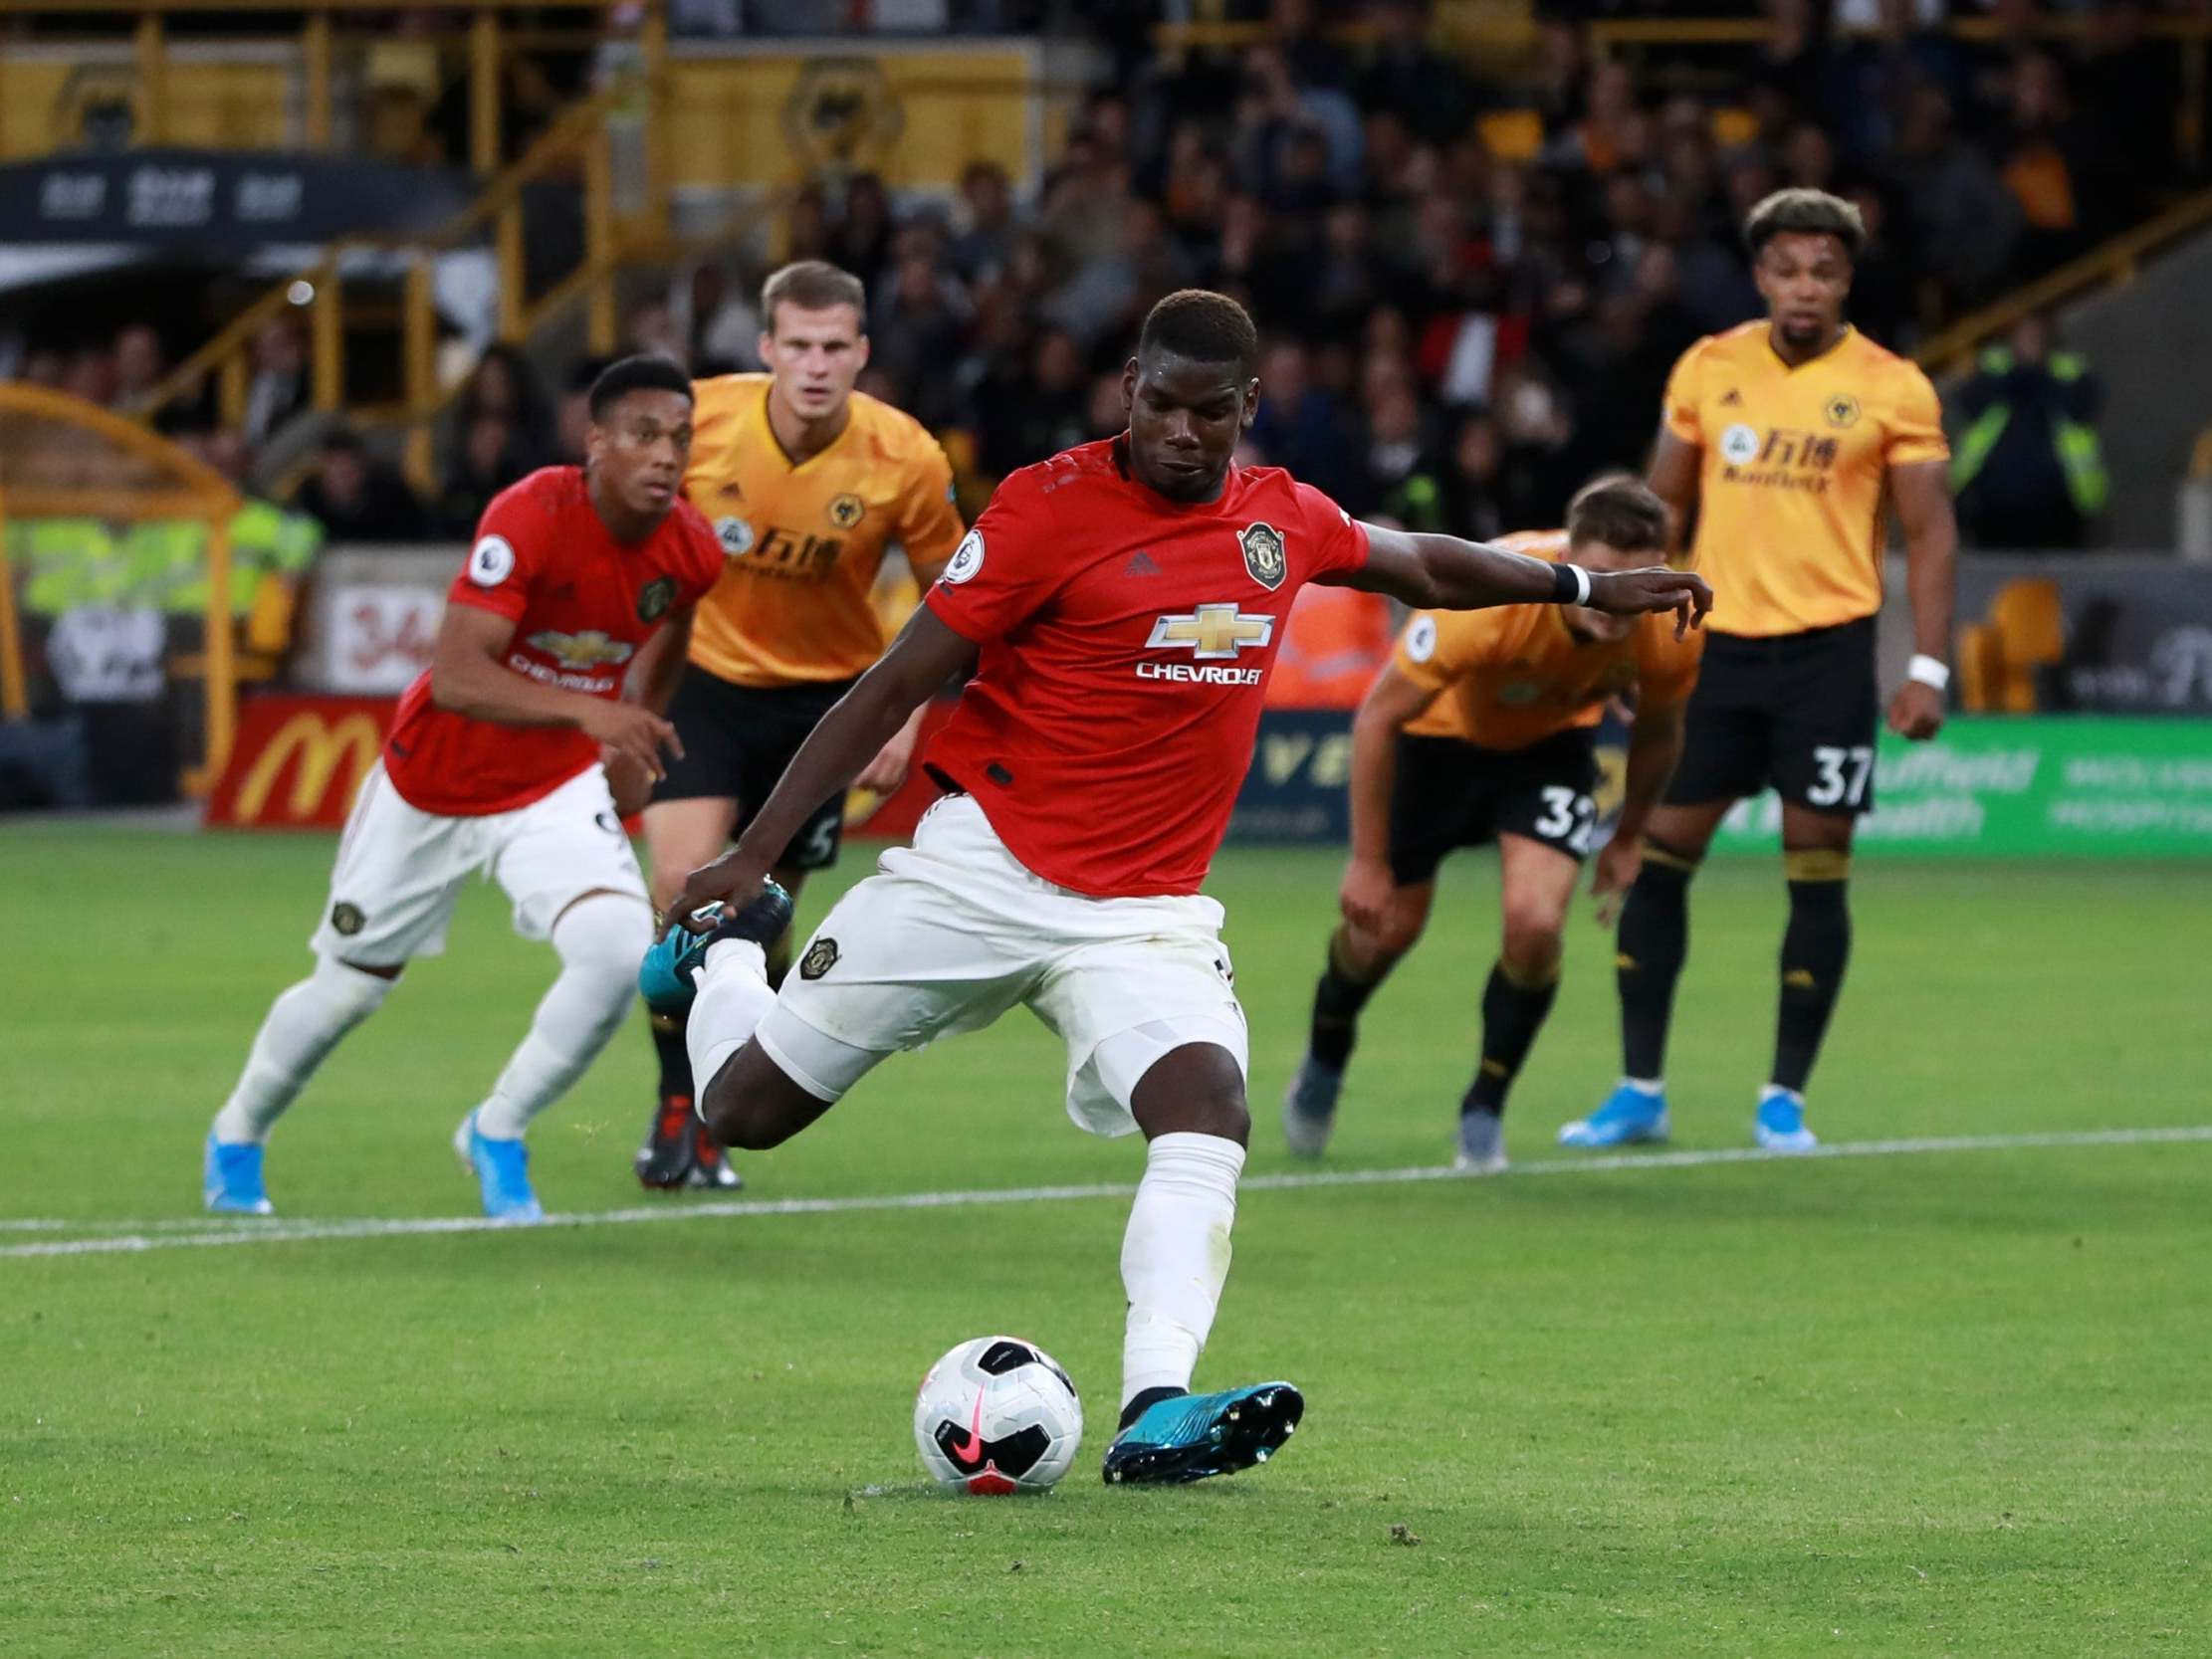 Paul Pogba took Manchester United penalty because he wanted to, reveals Marcus Rashford after Wolves draw